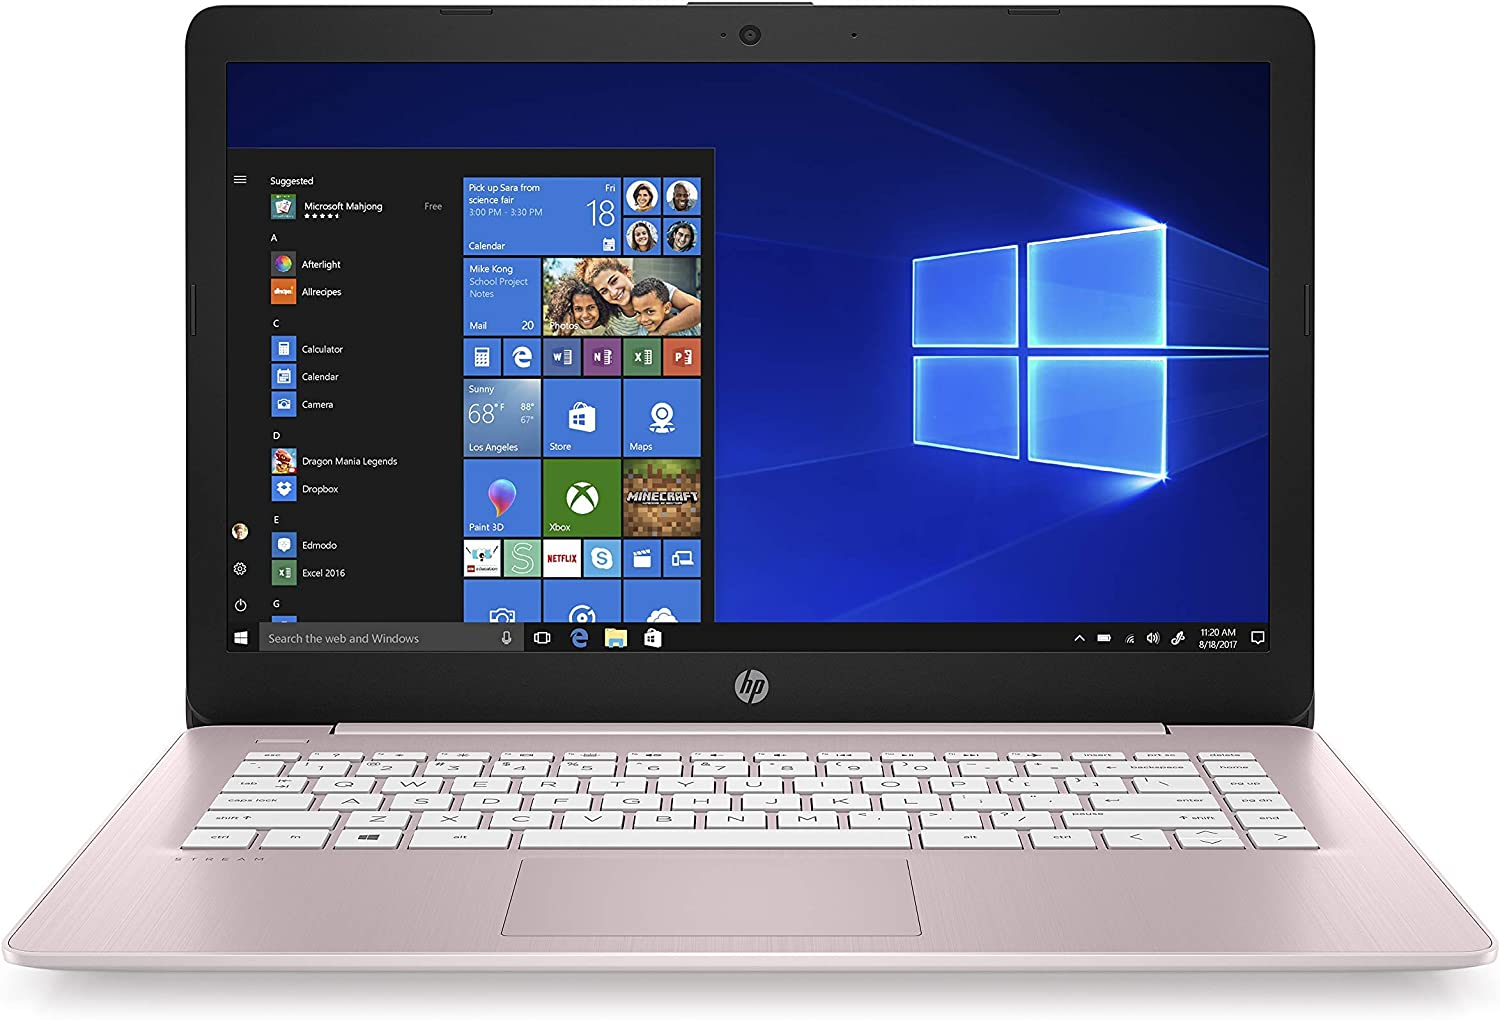 HP Stream 14-Inch Touchscreen Laptop, AMD Dual-Core A4-9120E Processor, 4 GB SDRAM, 64 GB eMMC, Windows 10 Home in S Mode with Office 365 Personal for One Year (14-ds0120nr, Rose Pink) (Renewed)